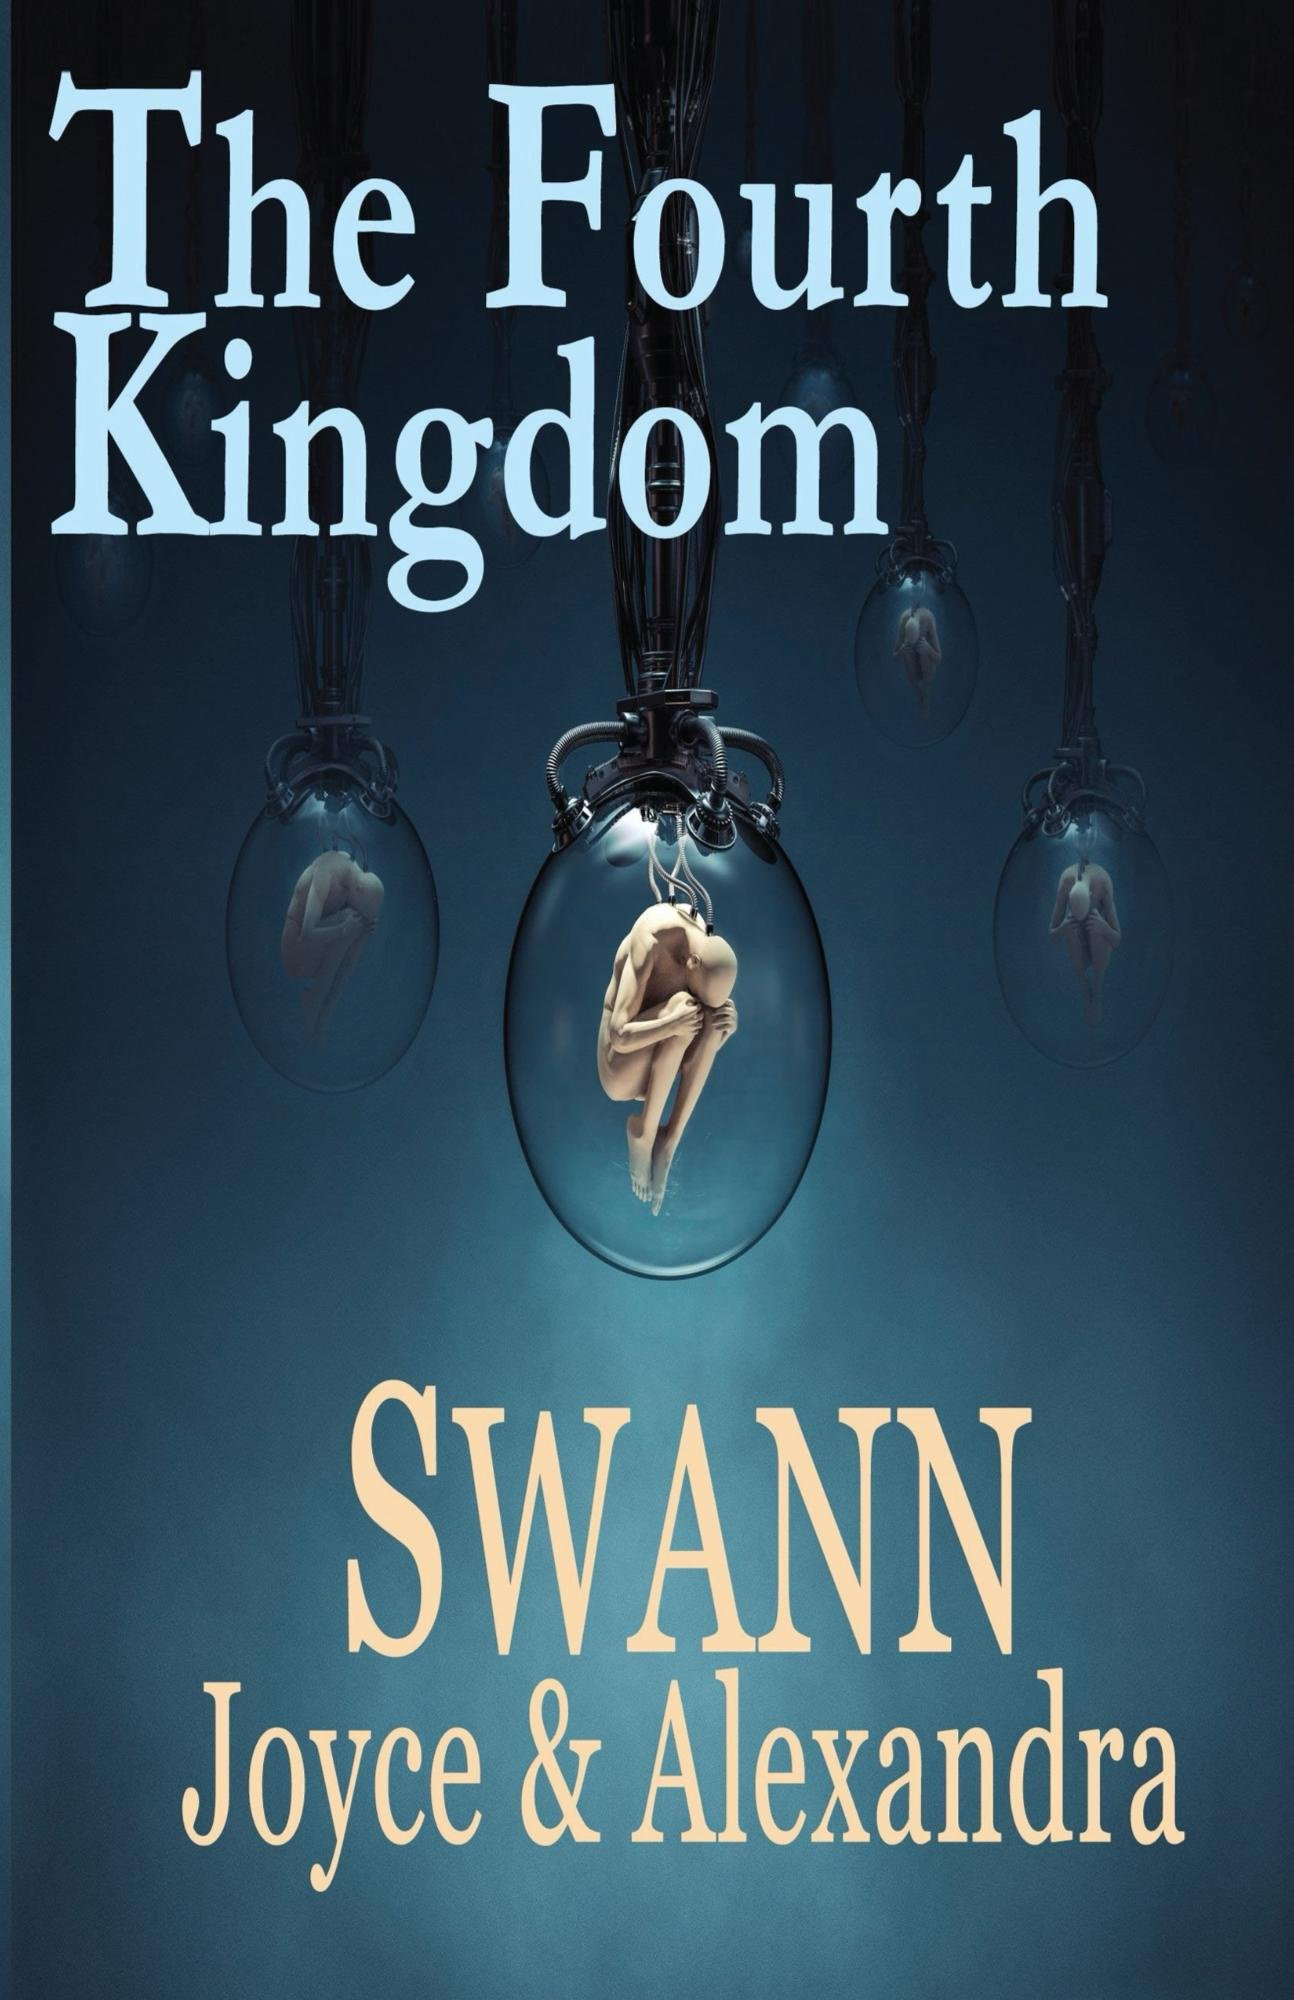 https://0201.nccdn.net/1_2/000/000/08a/355/The_Fourth_Kingdom_Cover_for_Kindle-1294x2000.jpg